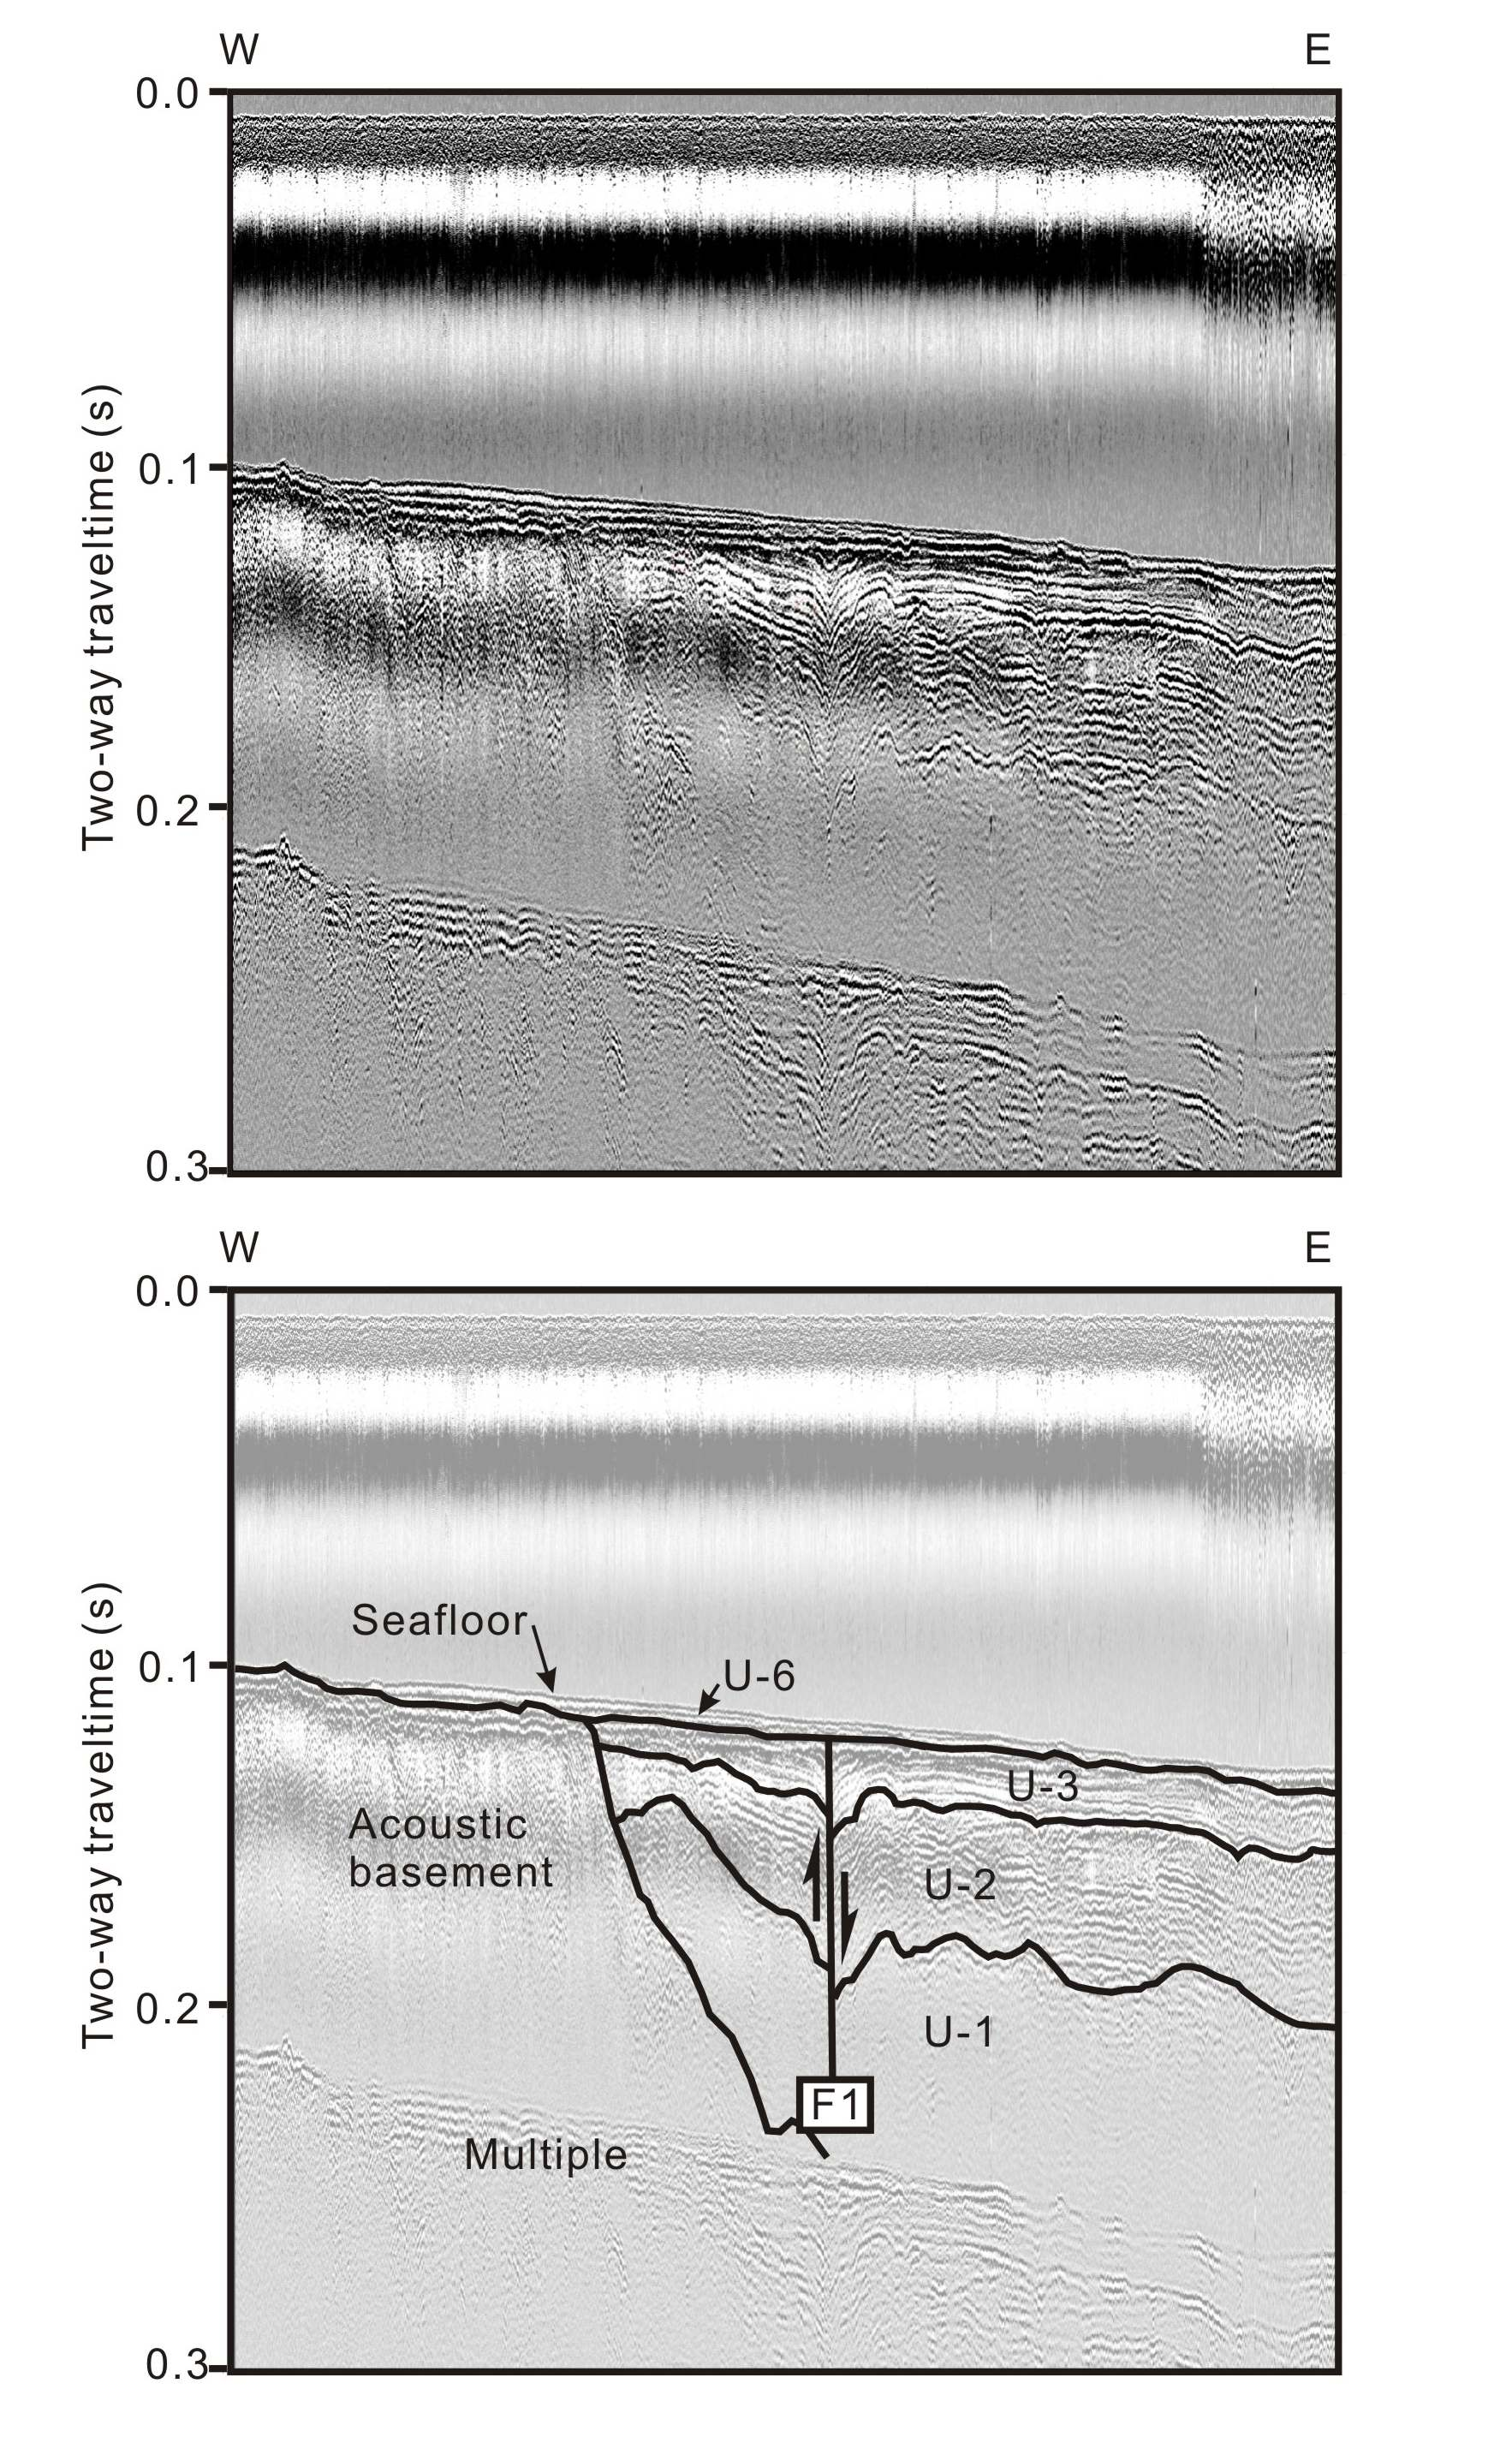 Fig. 3-7. (a) Seismic profile of K-04 and (b) its interpretive line drawings. See Fig. 3-4 for location.